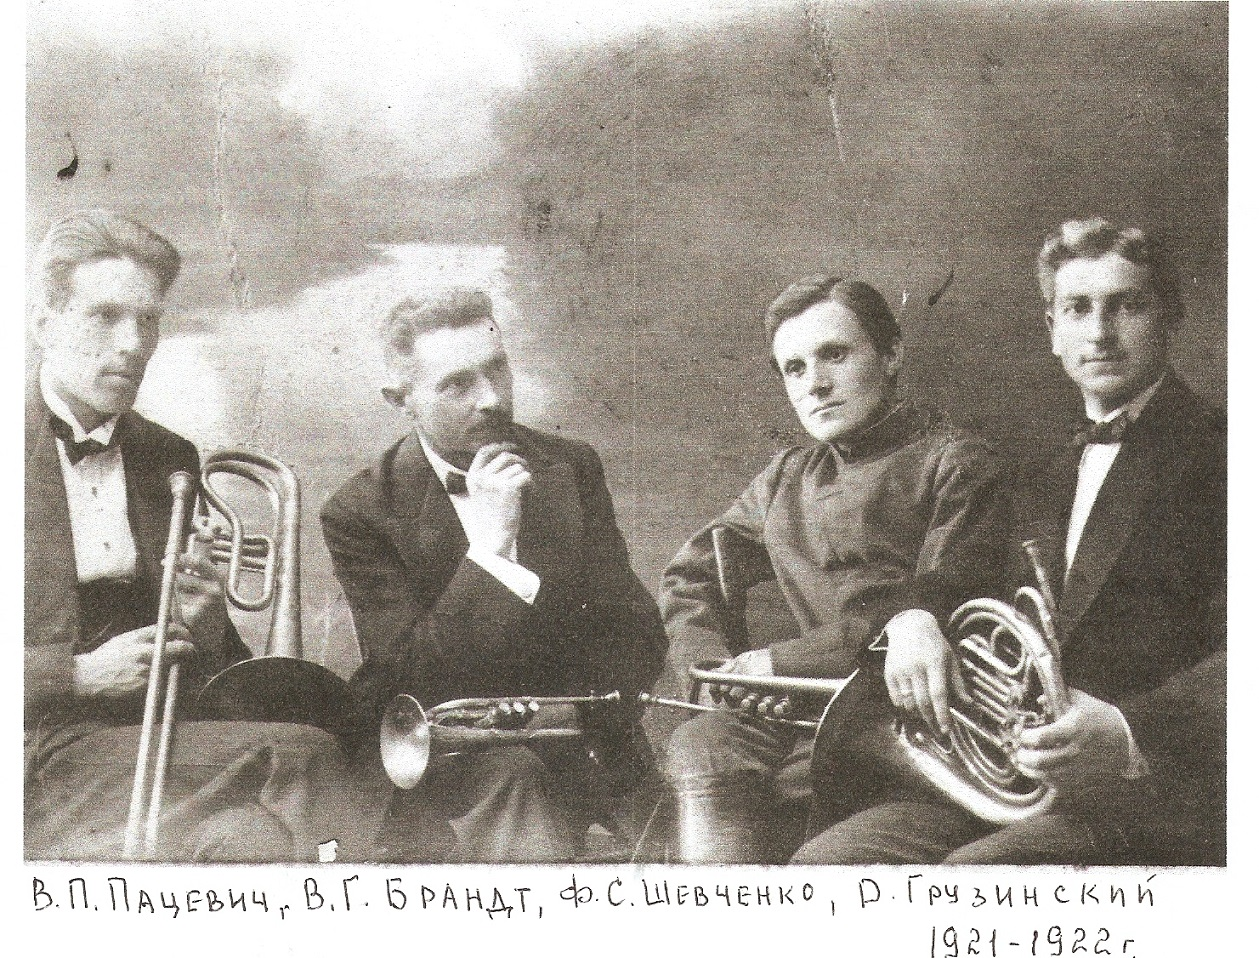 A Celebration of 100 Years of the Trombone Class at Saratov State Conservatory